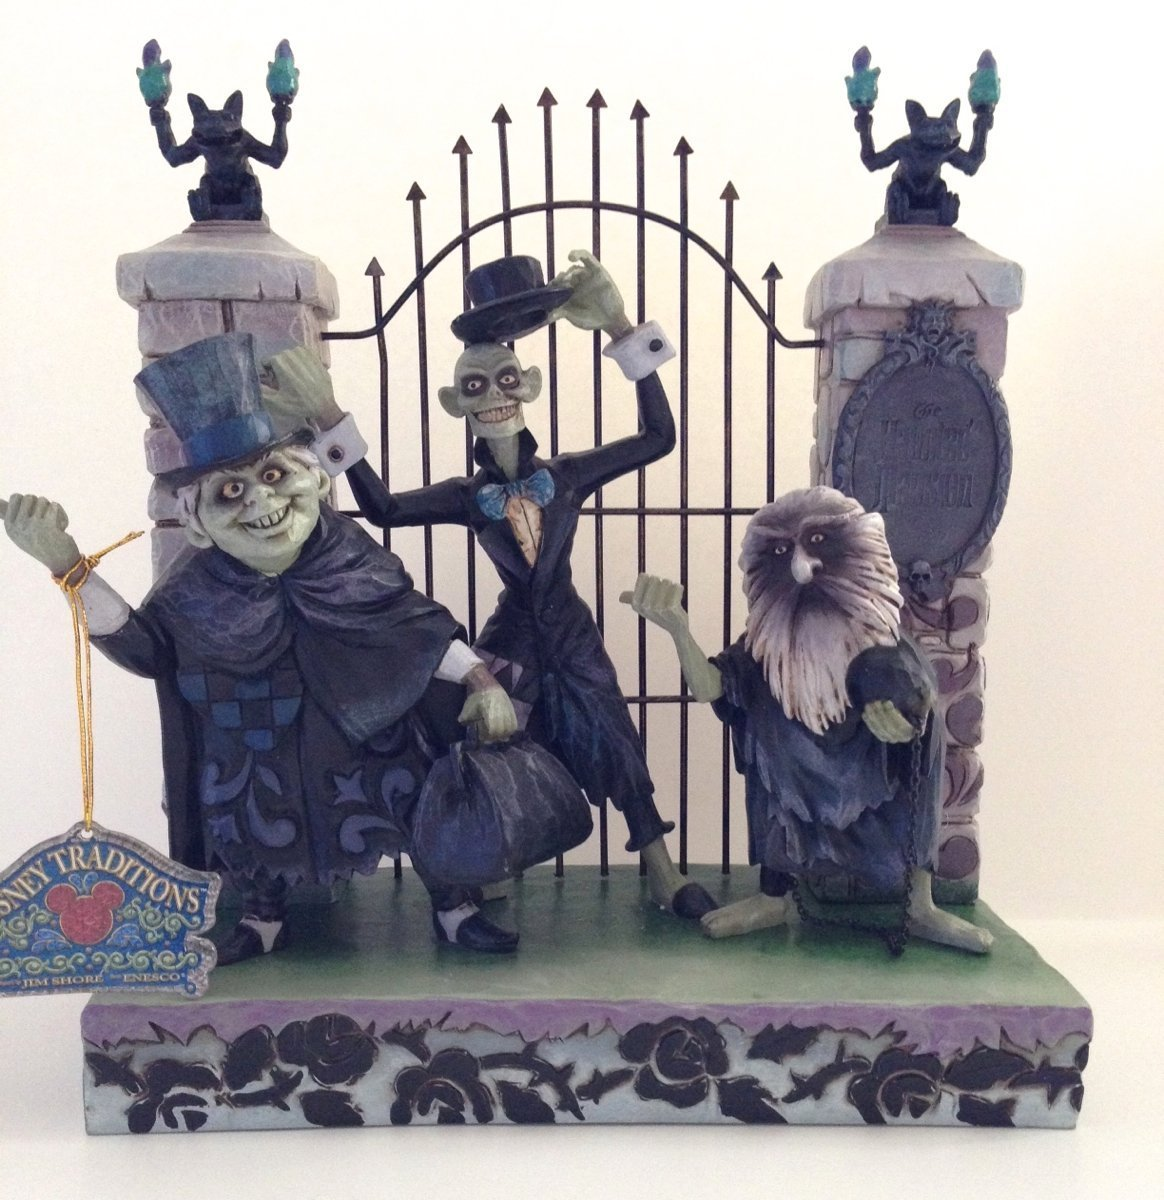 Disney Haunted Mansion Hitchhiking Ghosts Figurine - Jim Shore